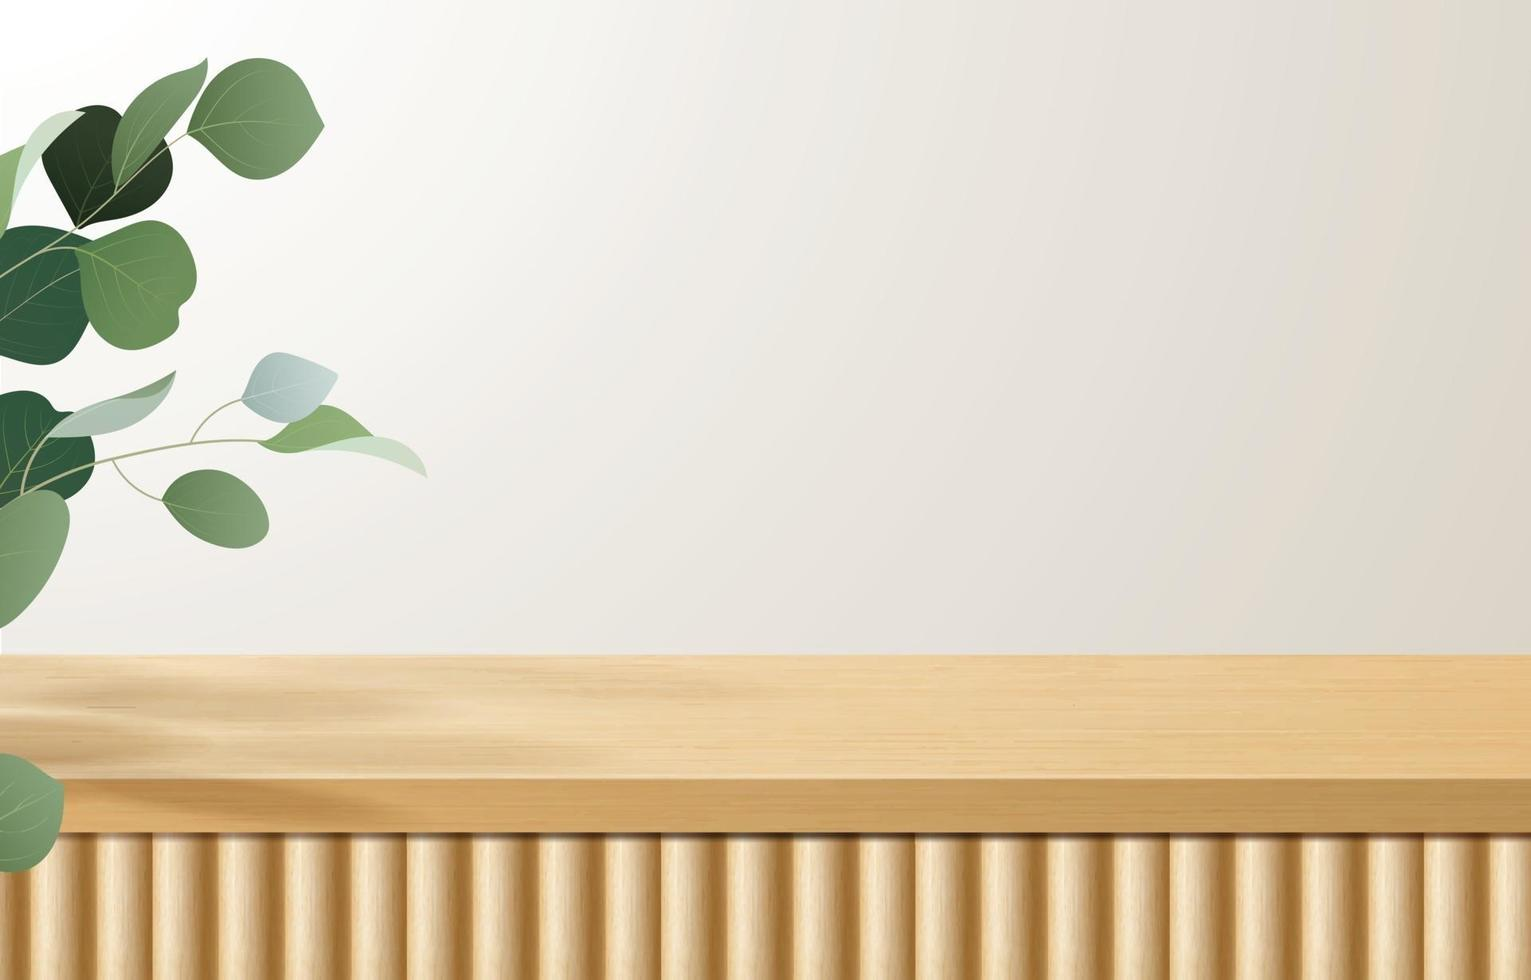 Empty minimal wooden top table, wood podium in white background with green leaves. for product presentation, mock up, show cosmetic product display, Podium, stage pedestal or platform. 3d vector